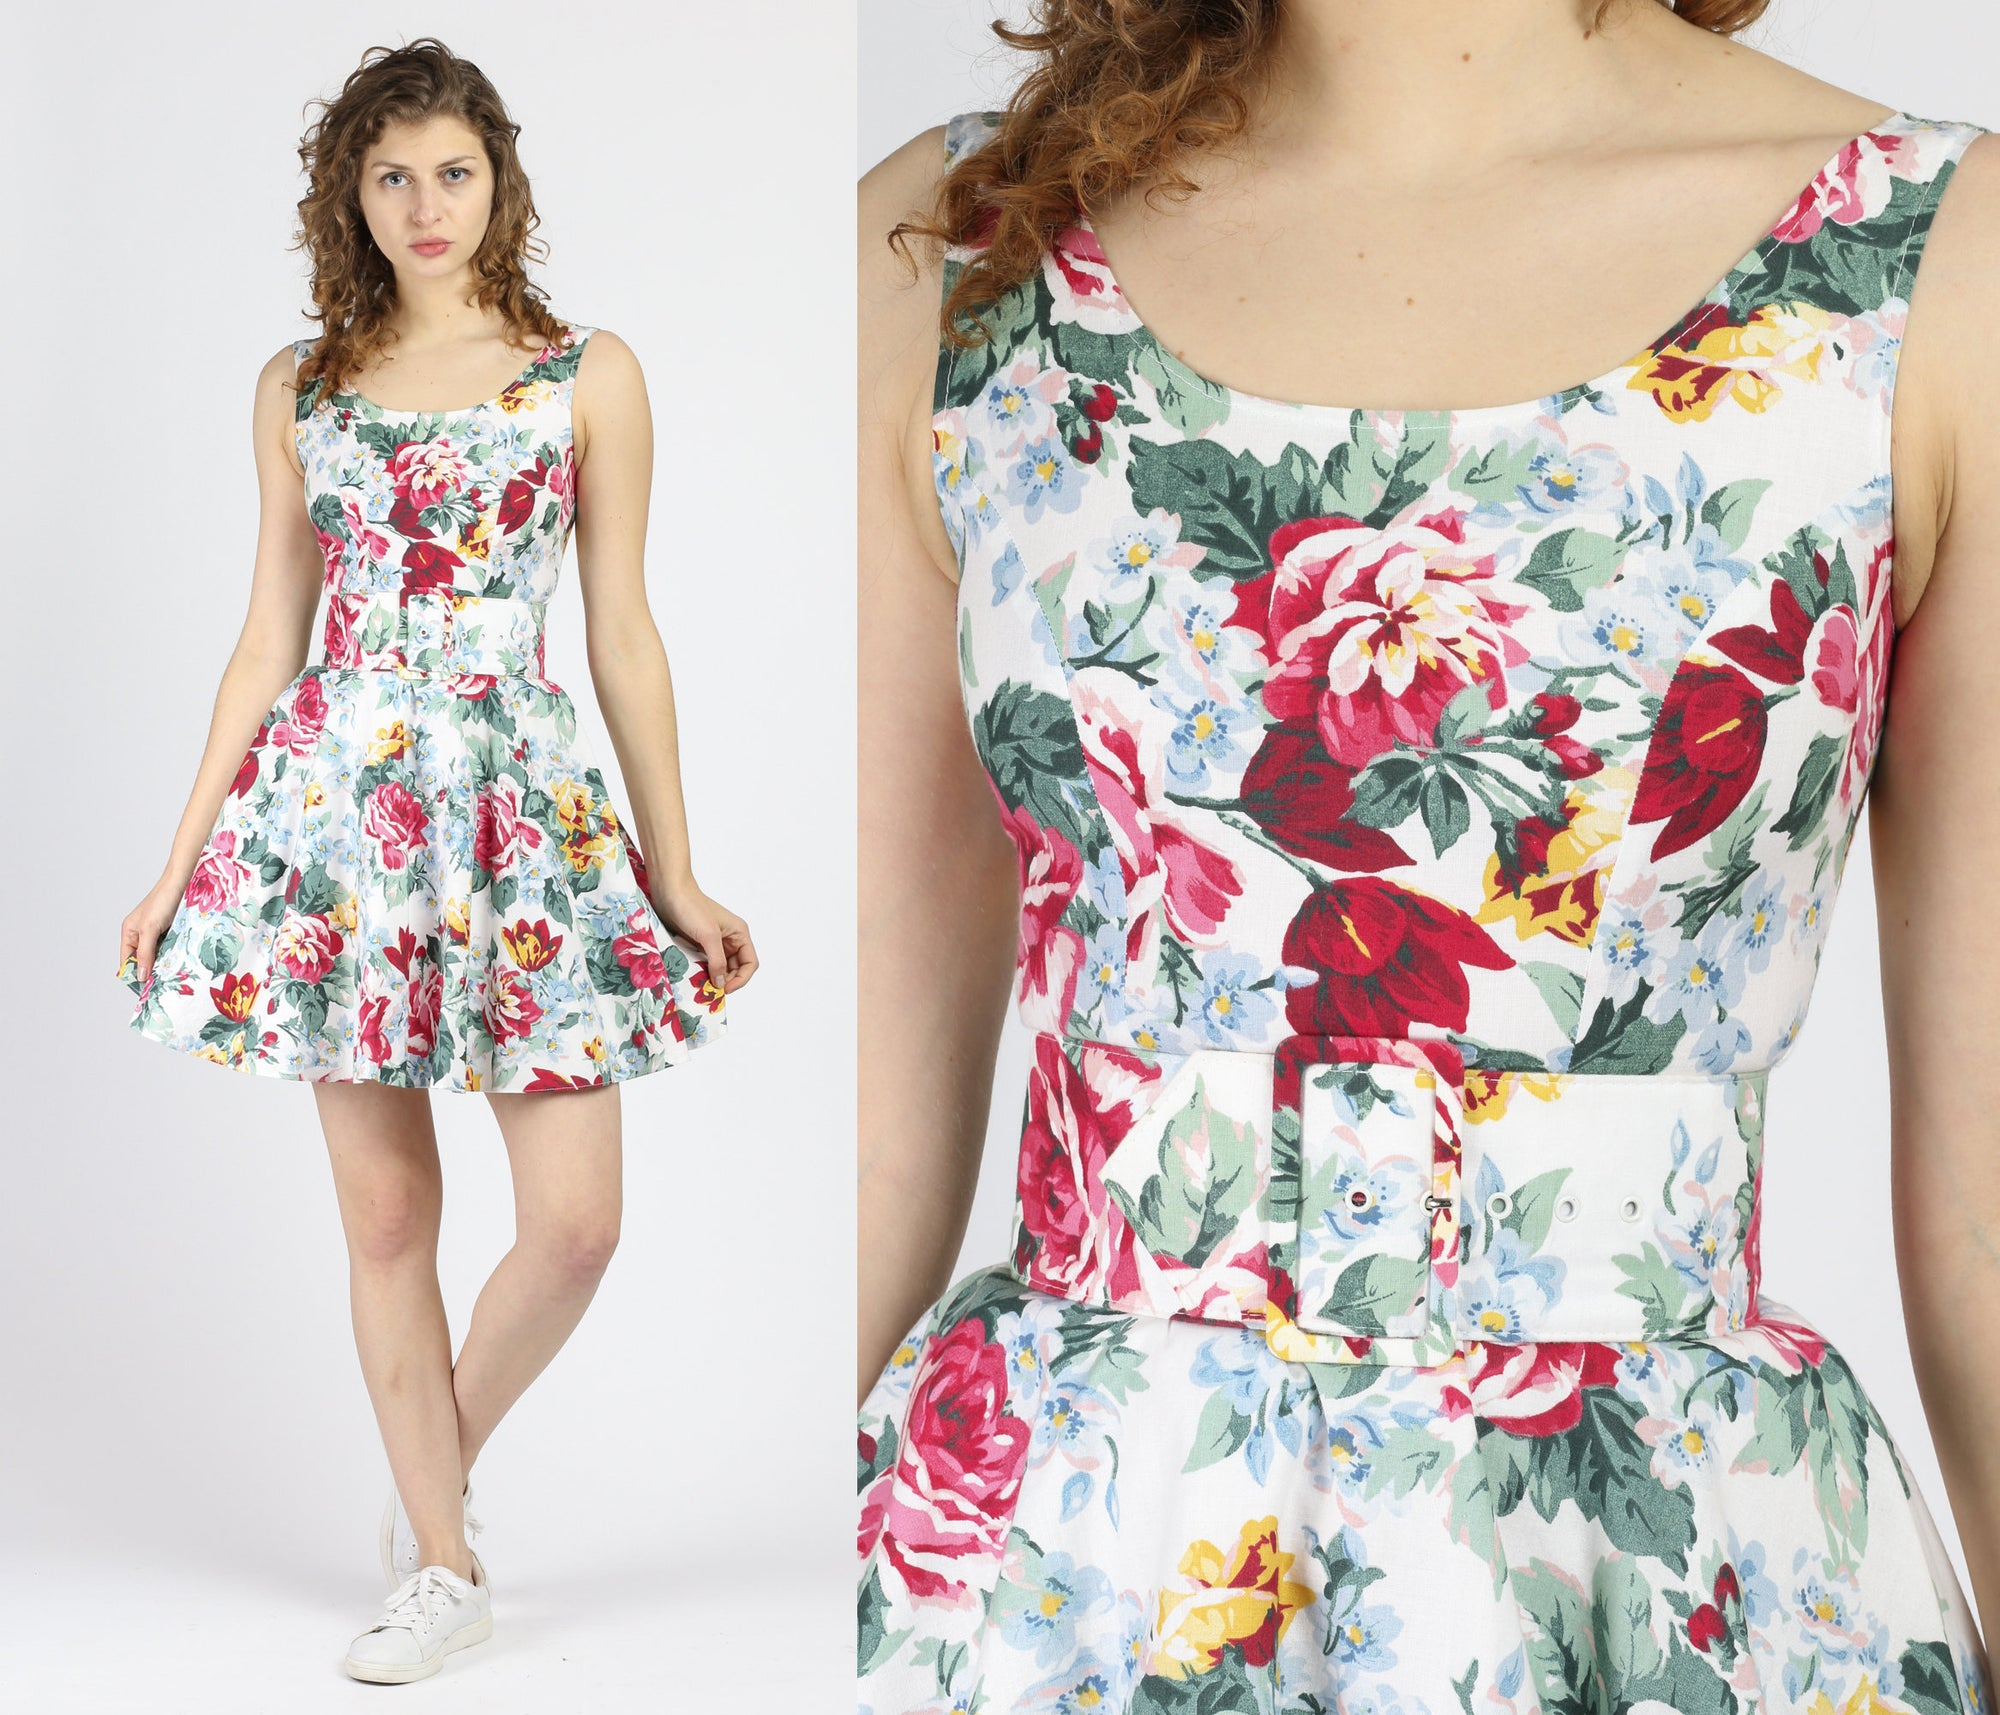 Vintage Floral Belted Fit & Flare Mini Dress - Extra Small